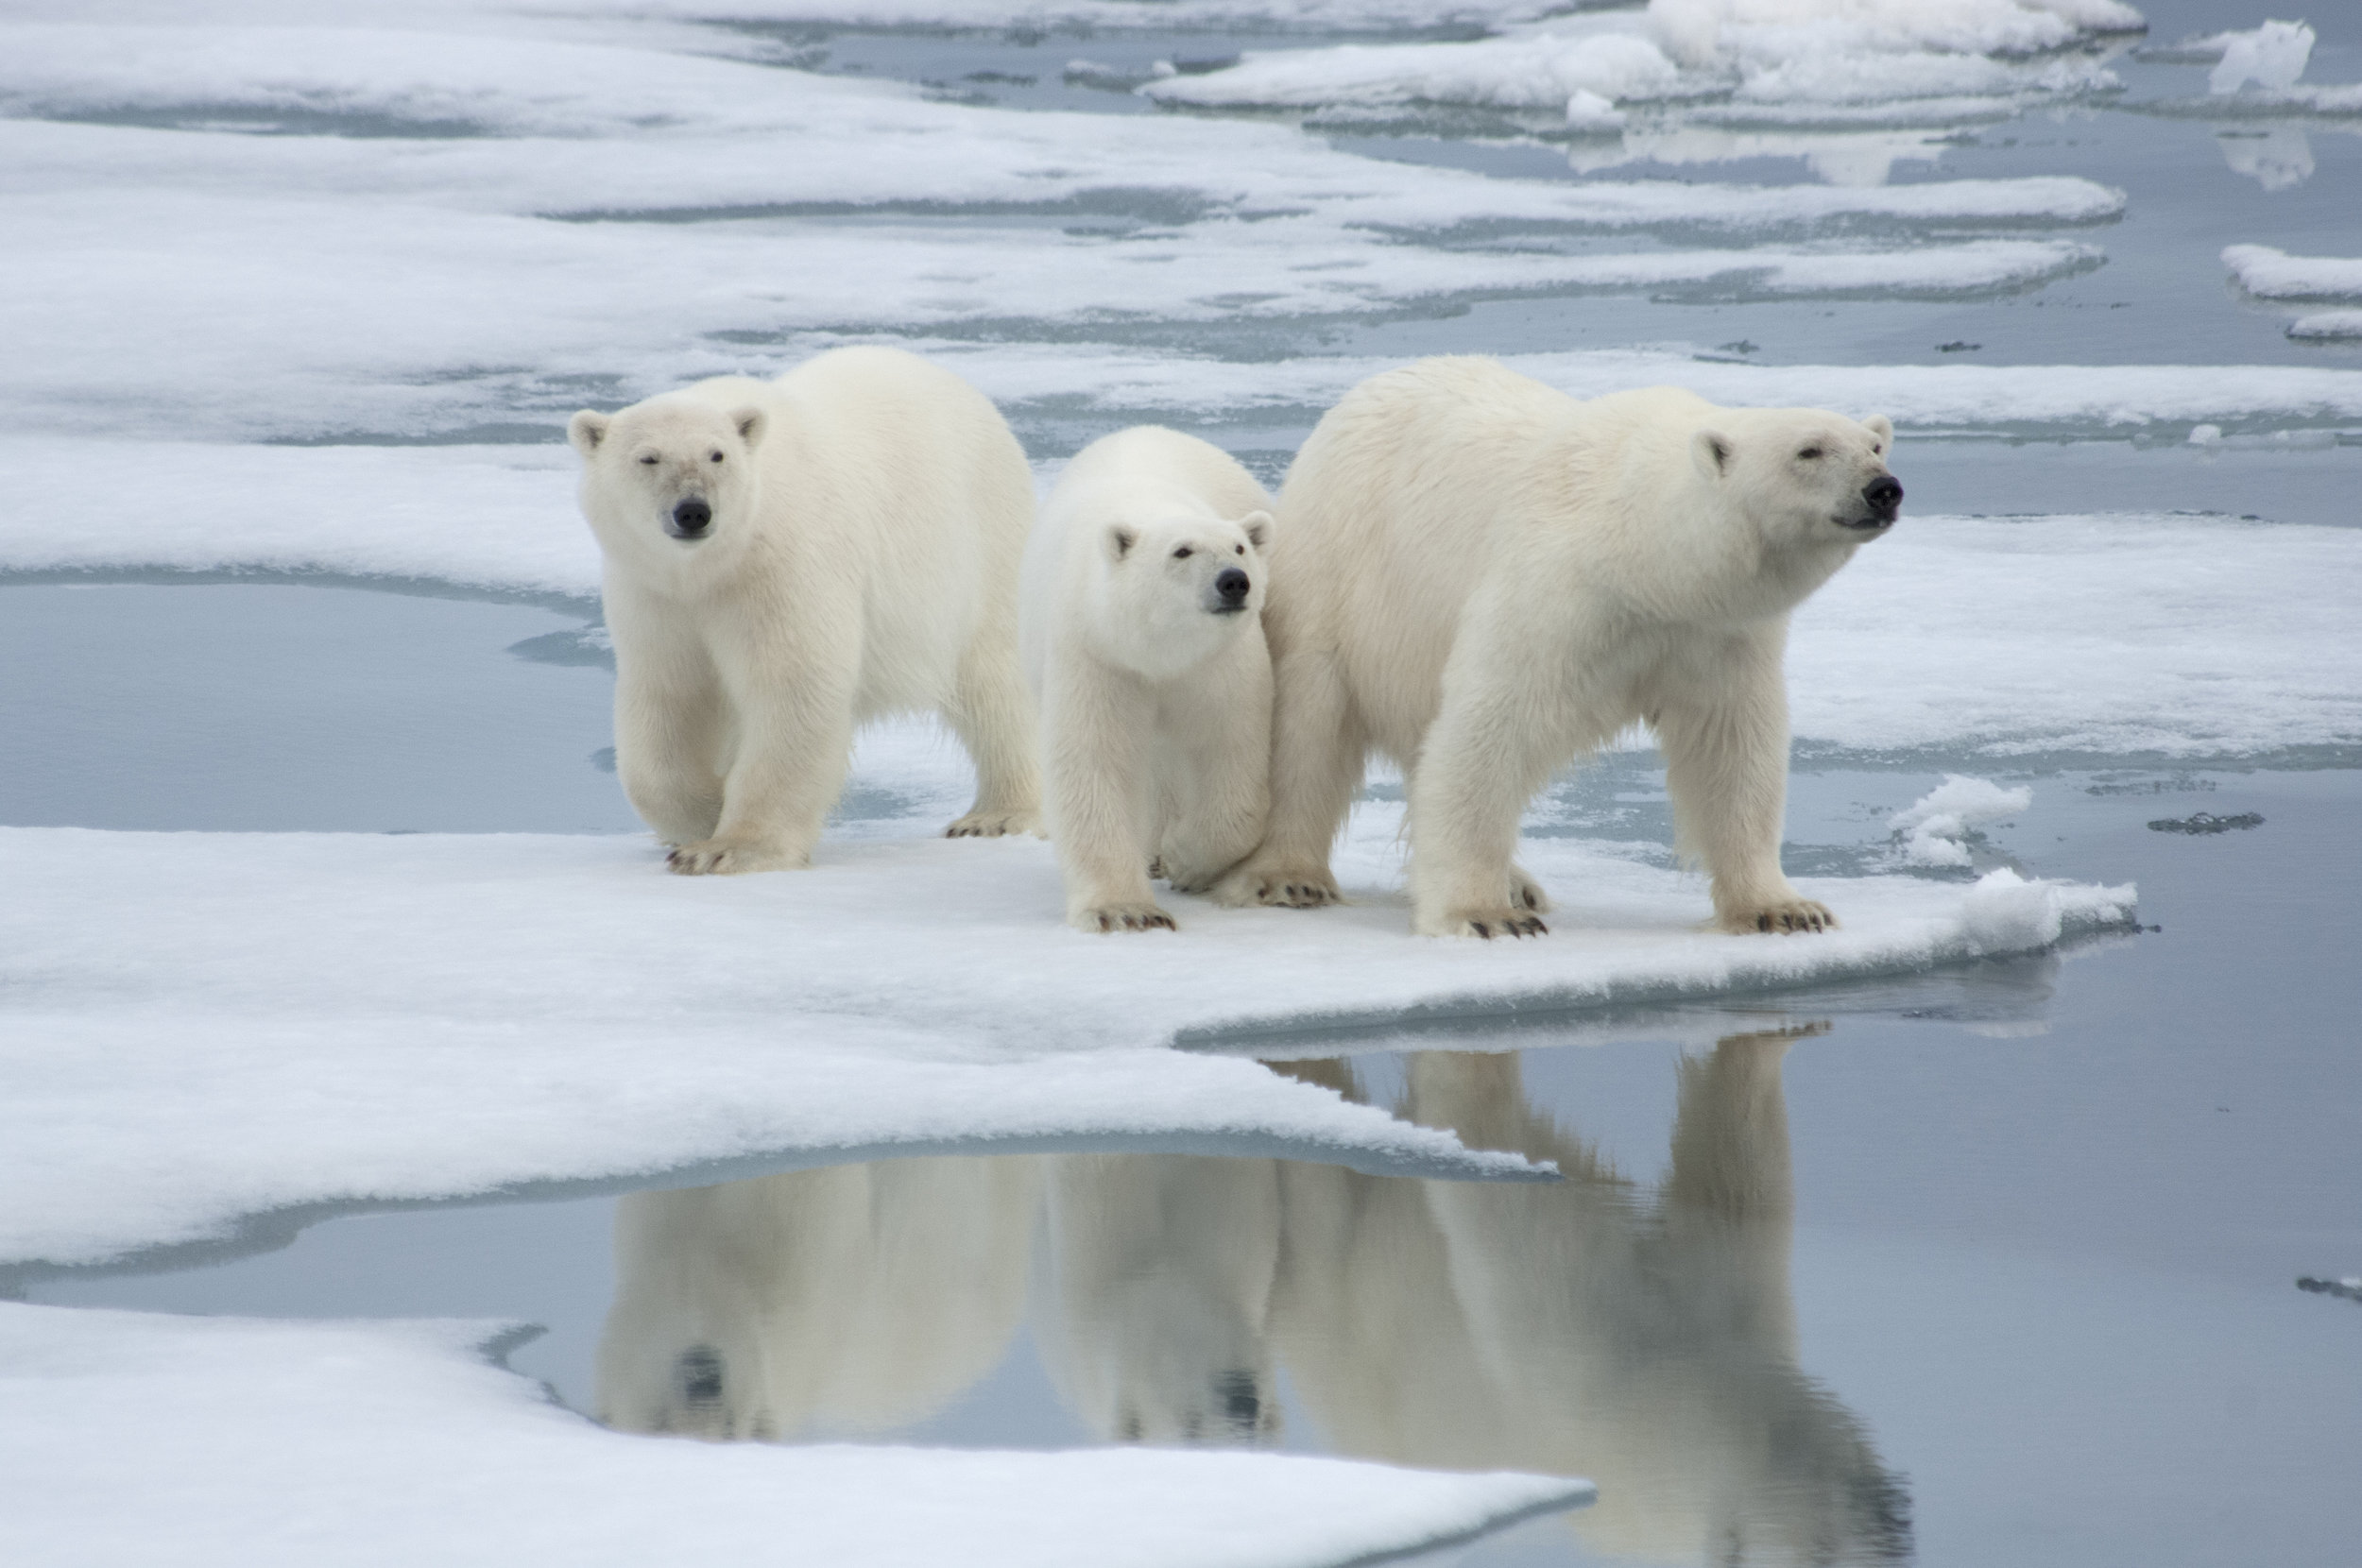 13. A requirement to bear arms against bears? - Anyone who decides to venture outside Longyearbyen, a town in Svalbard, Norway, is required to carry a rifle for protection against polar bears. Longyearbyen is known for polar bears coming into the town but are extremely active right outside of town.